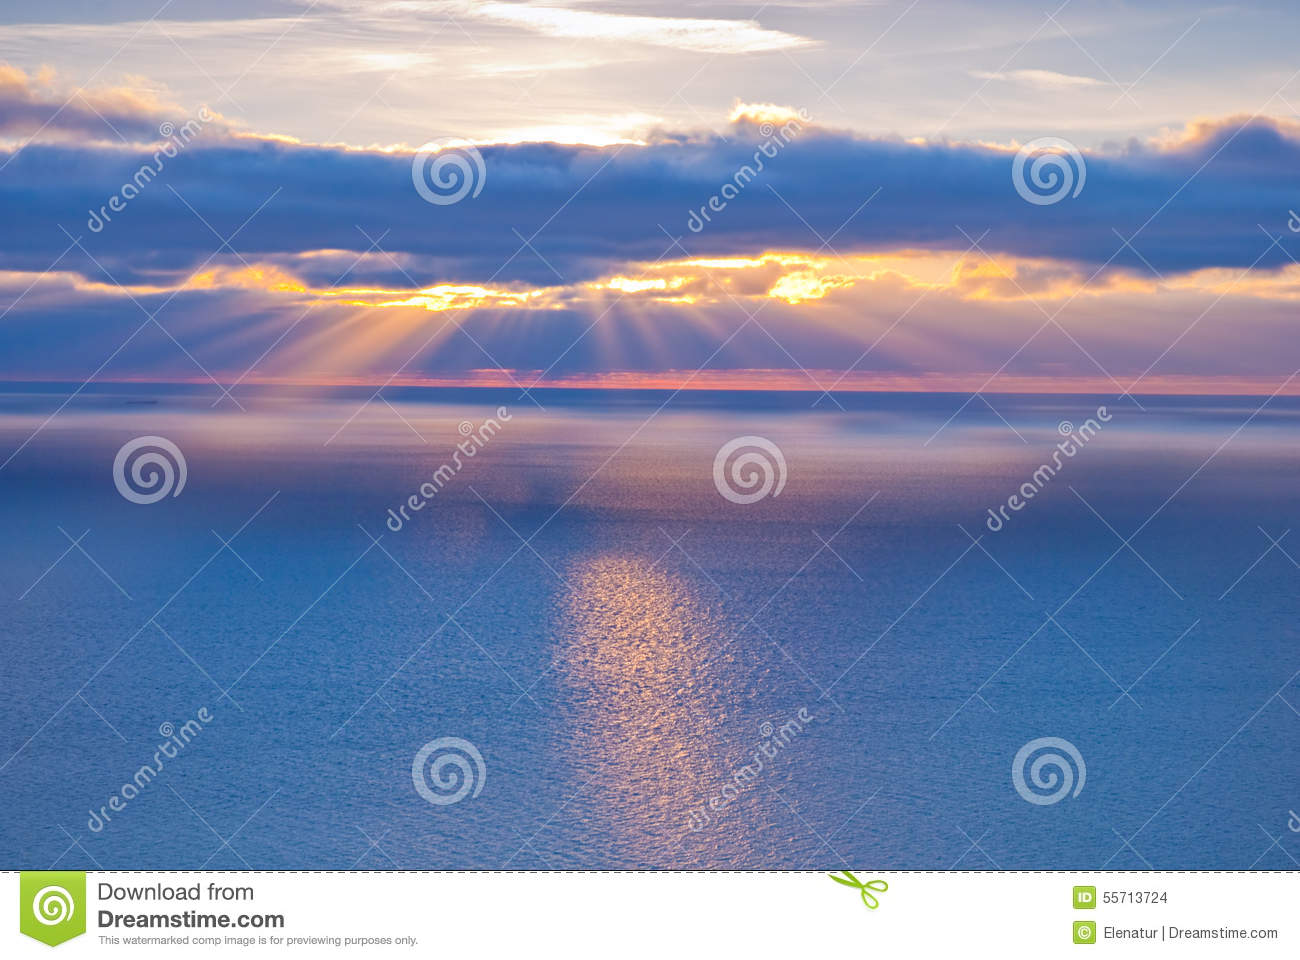 Beautiful scenery with clouds and sunbeams